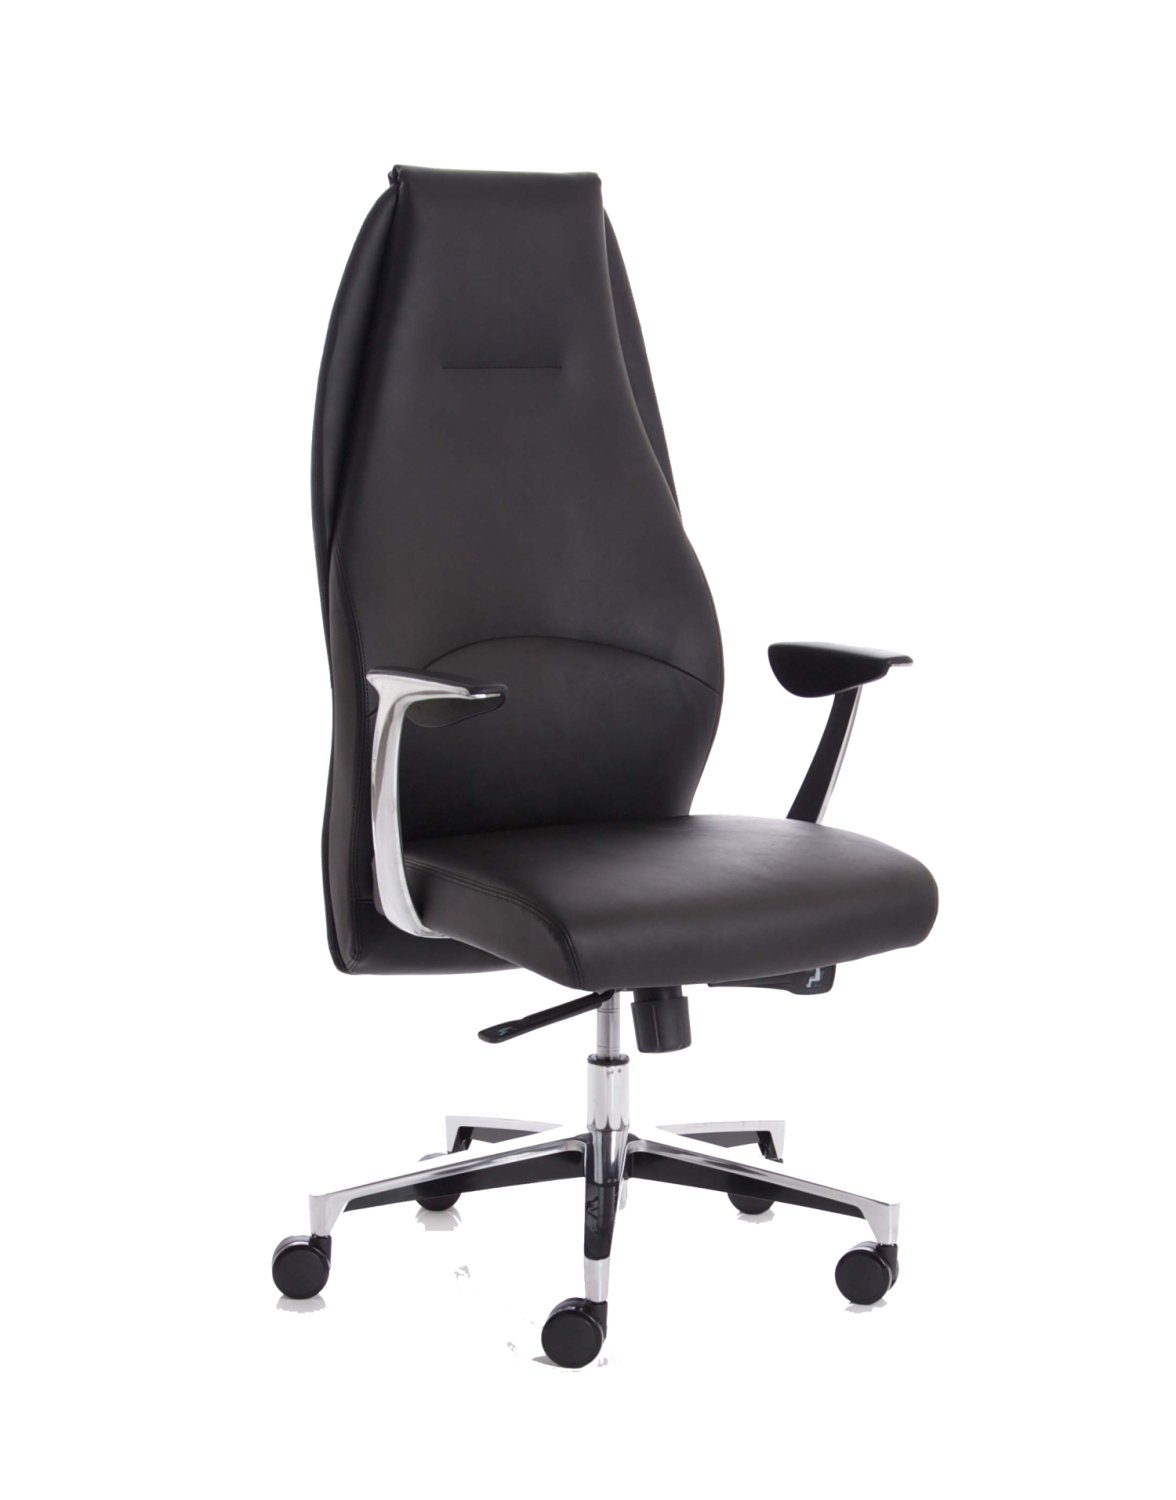 Executive Leather Chair Gentoo Mien Executive Leather Chair